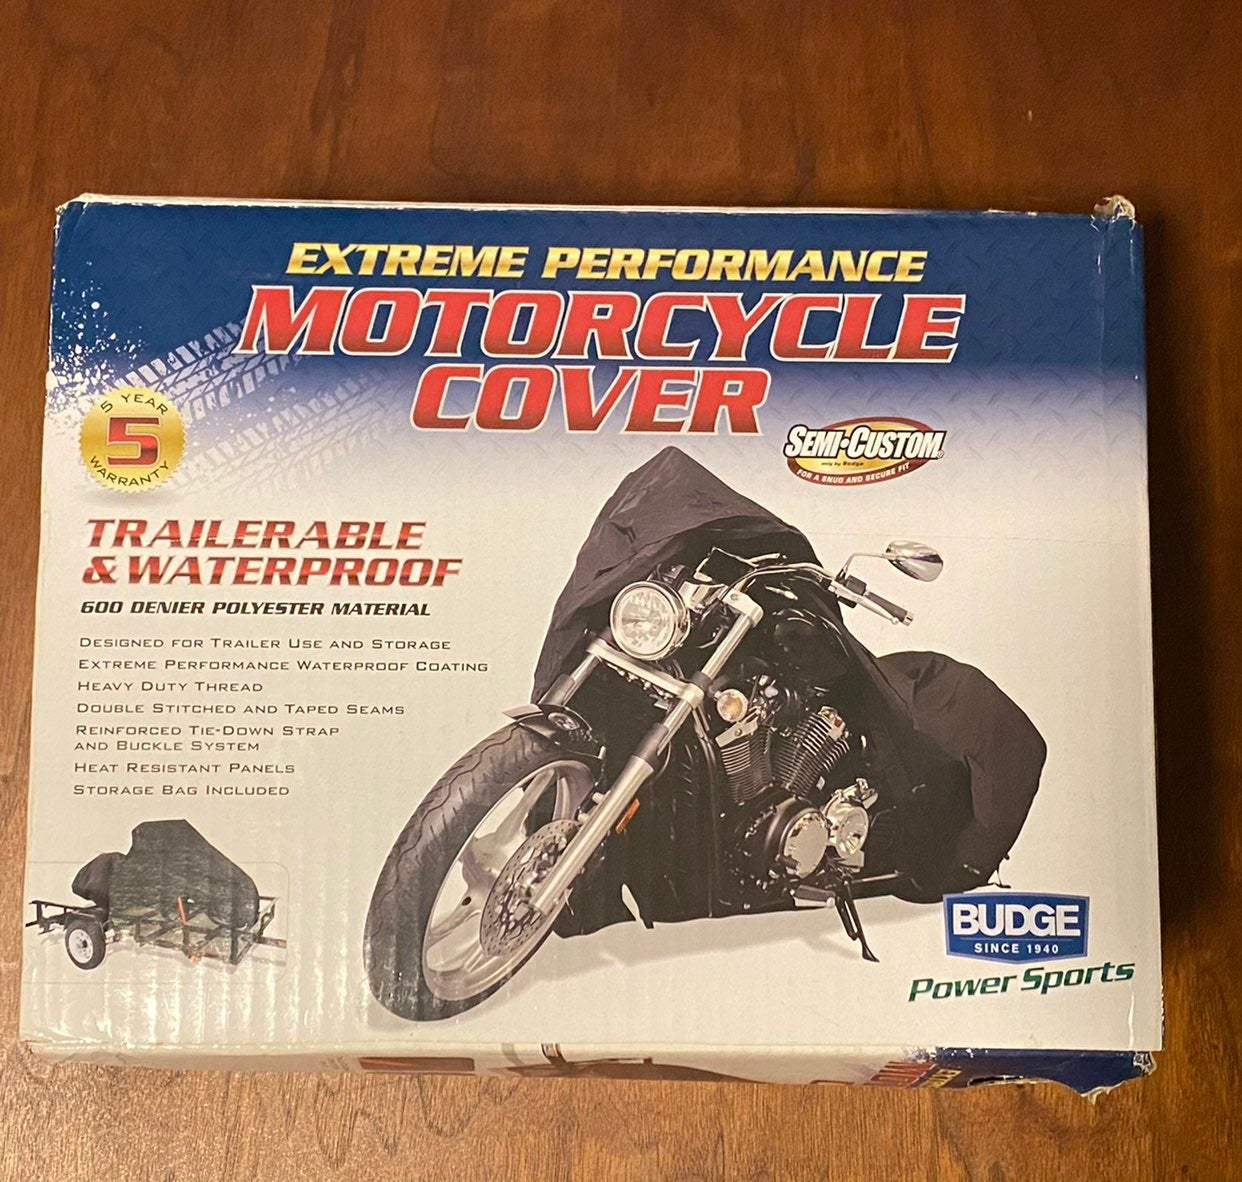 Budge motorcycle cover